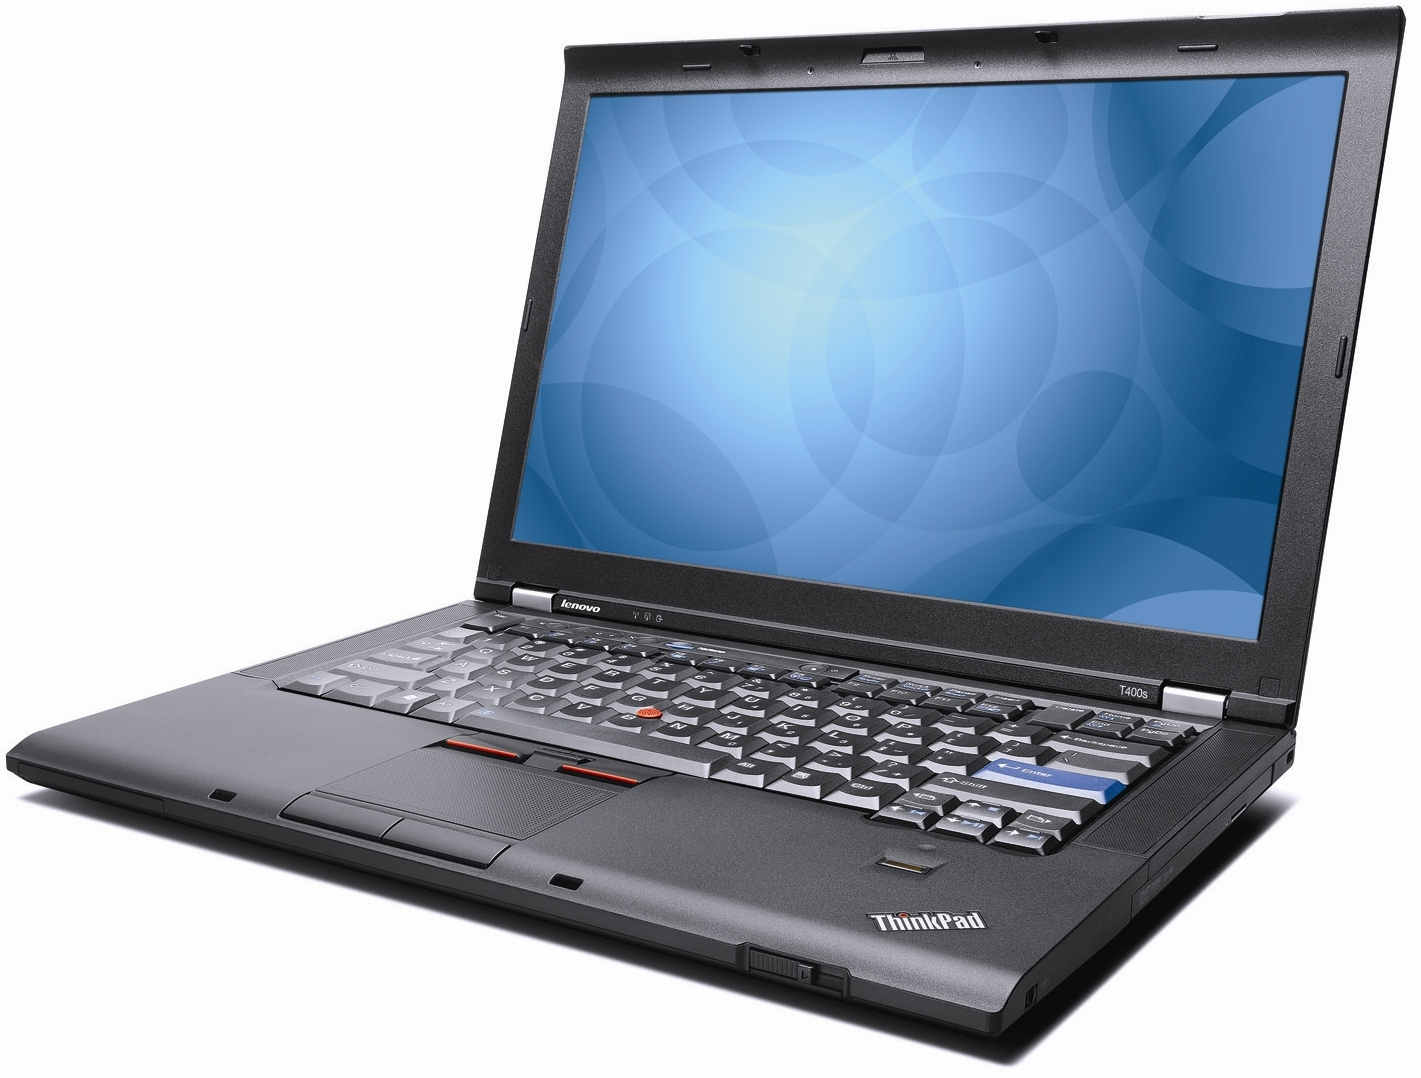 LENOVO T400 AMT DRIVERS WINDOWS XP